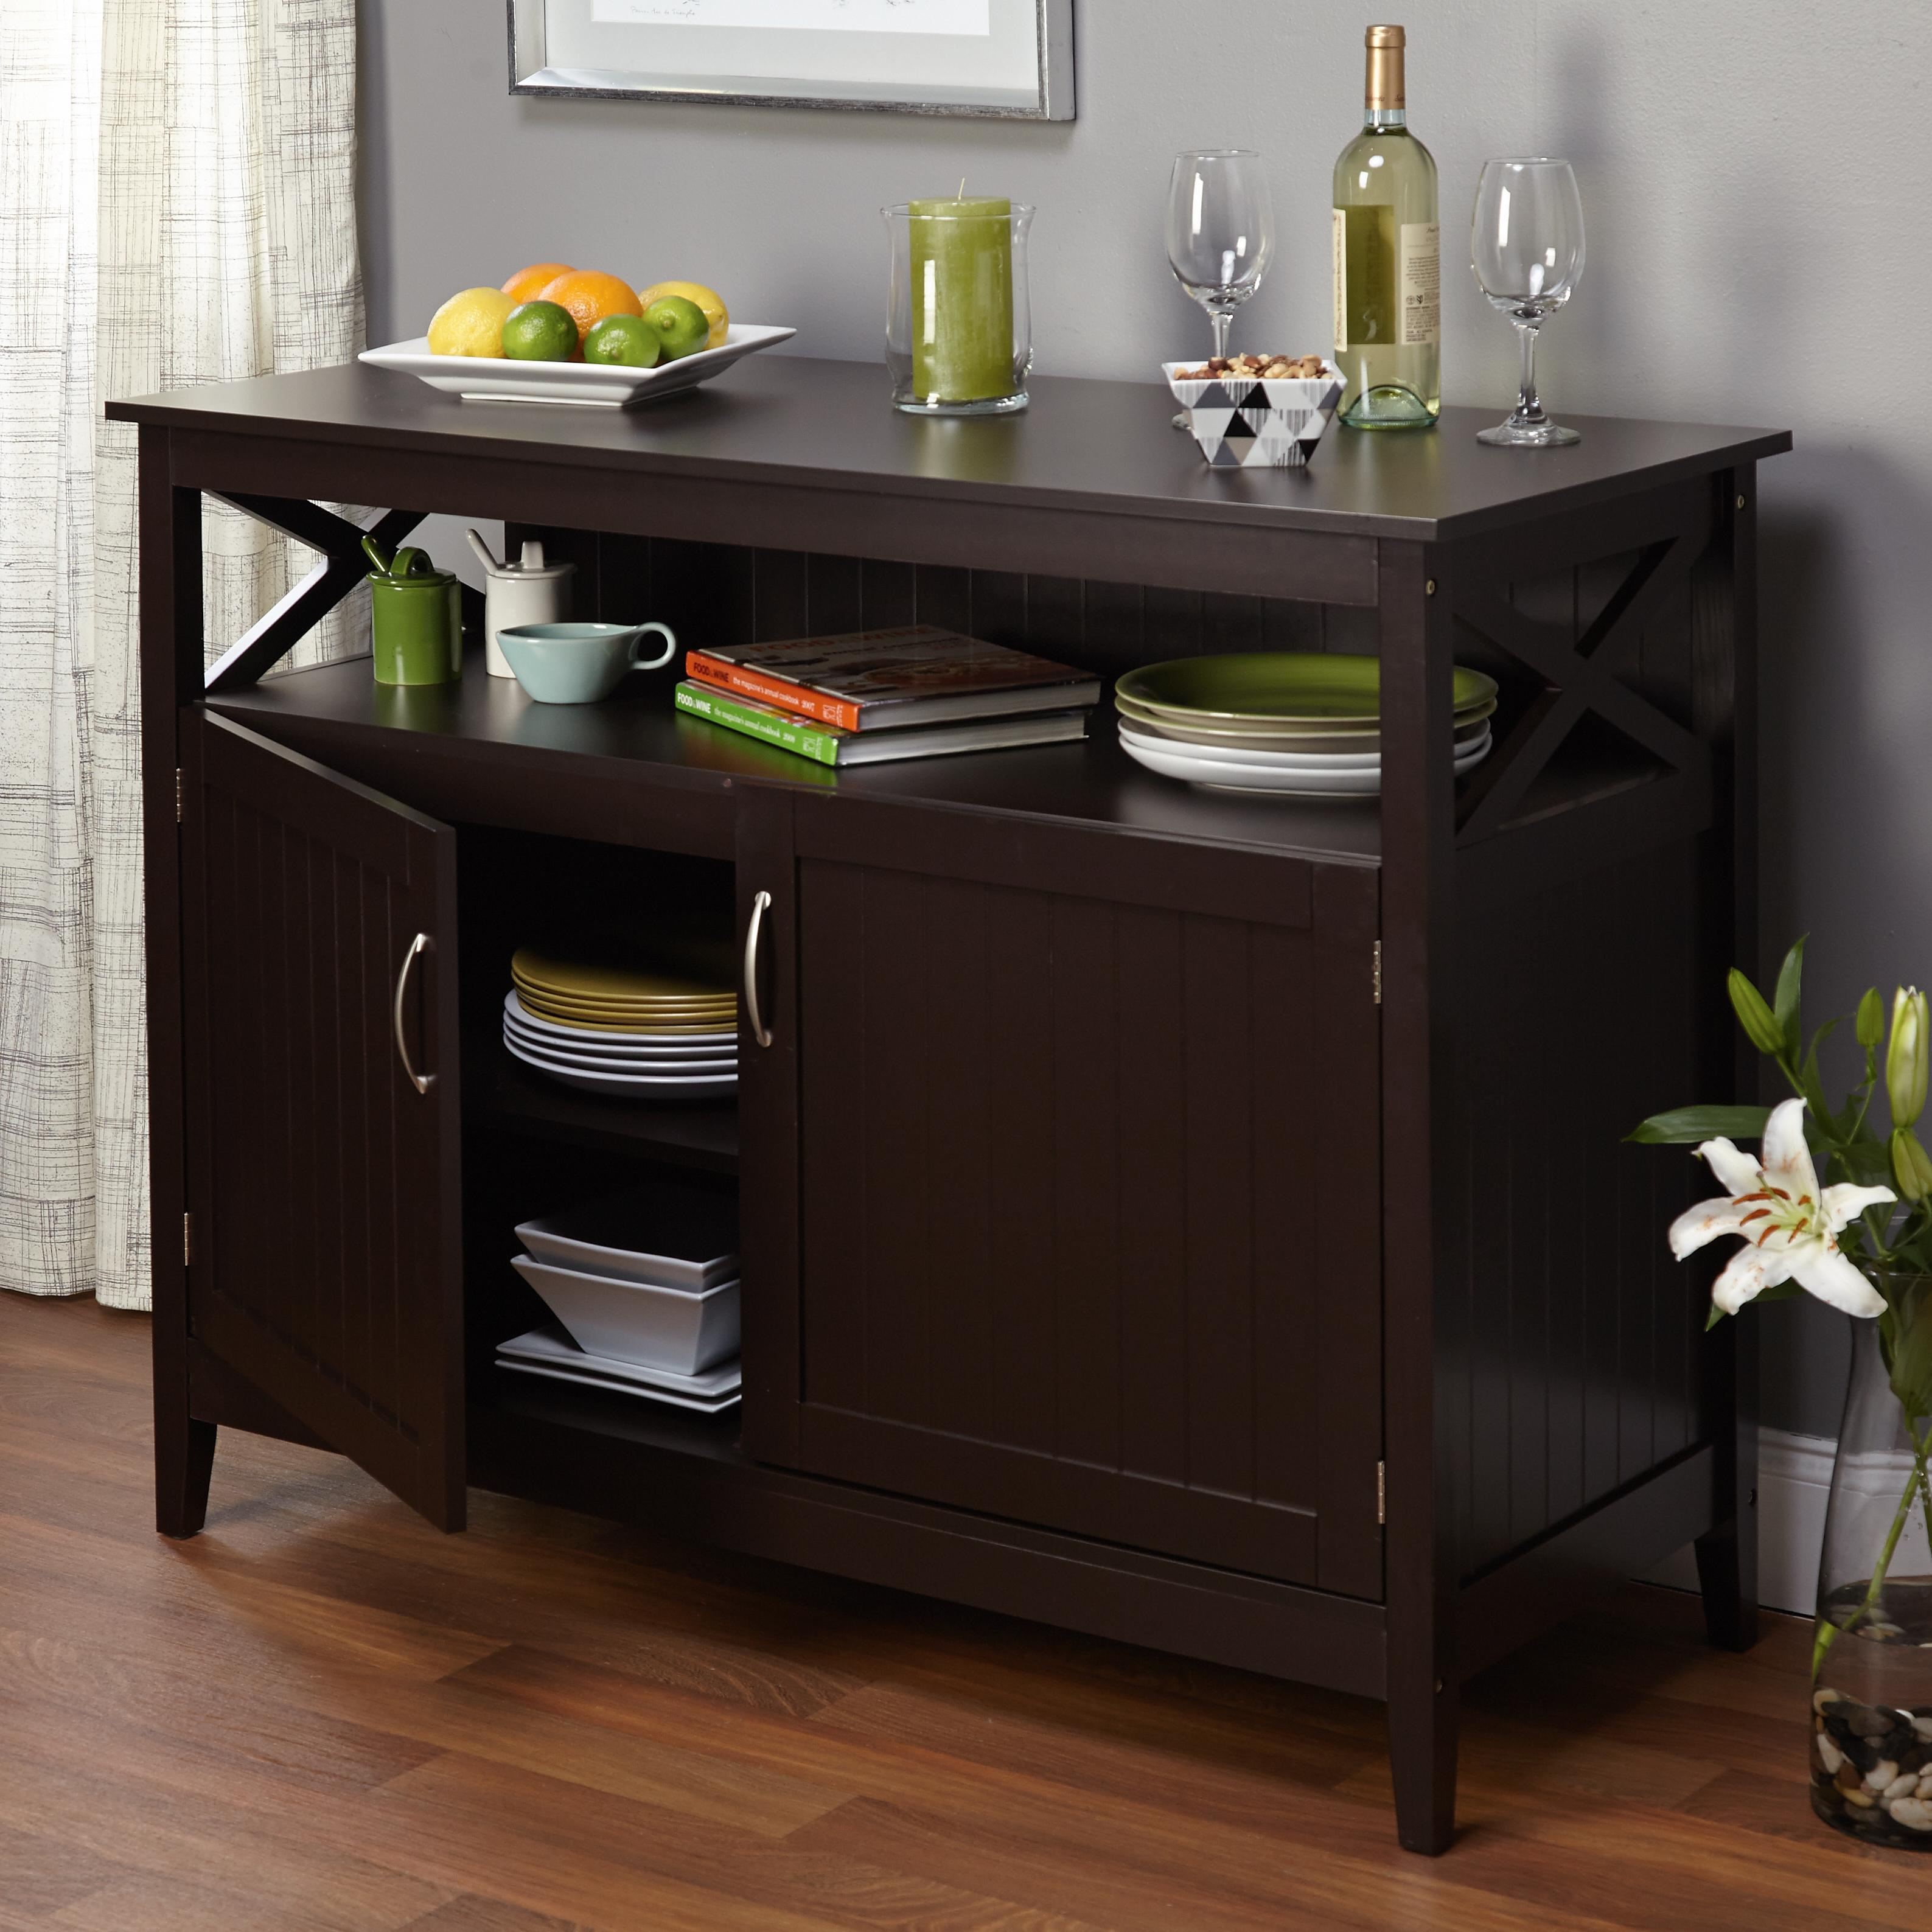 32 Dining Room Storage Ideas: Amazon.com: Target Marketing Systems Southport Collection